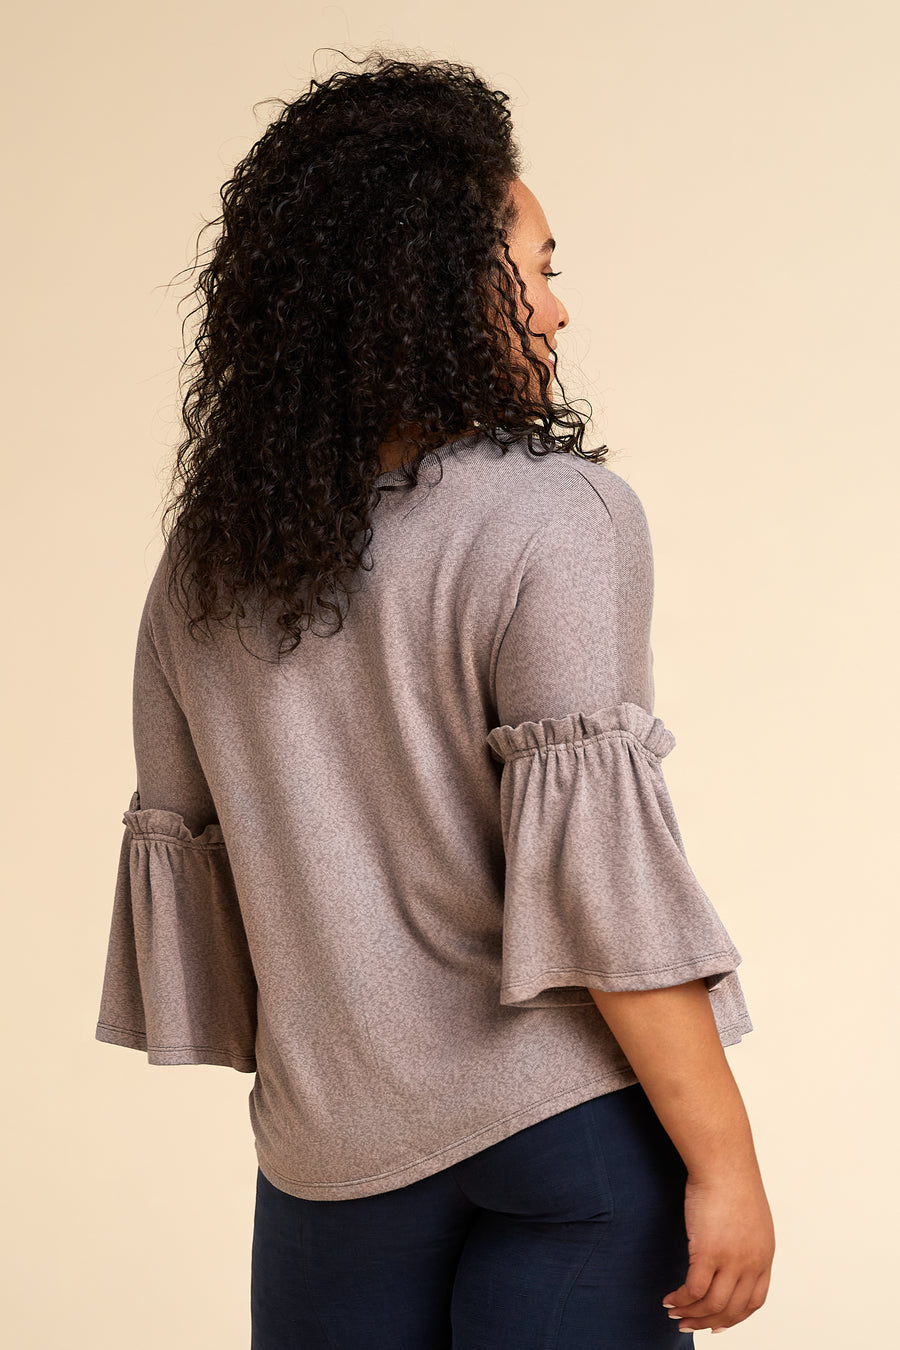 Model wearing Akala Clothing's sustainable Reversible Neckline Sweater in Mink color, size Large